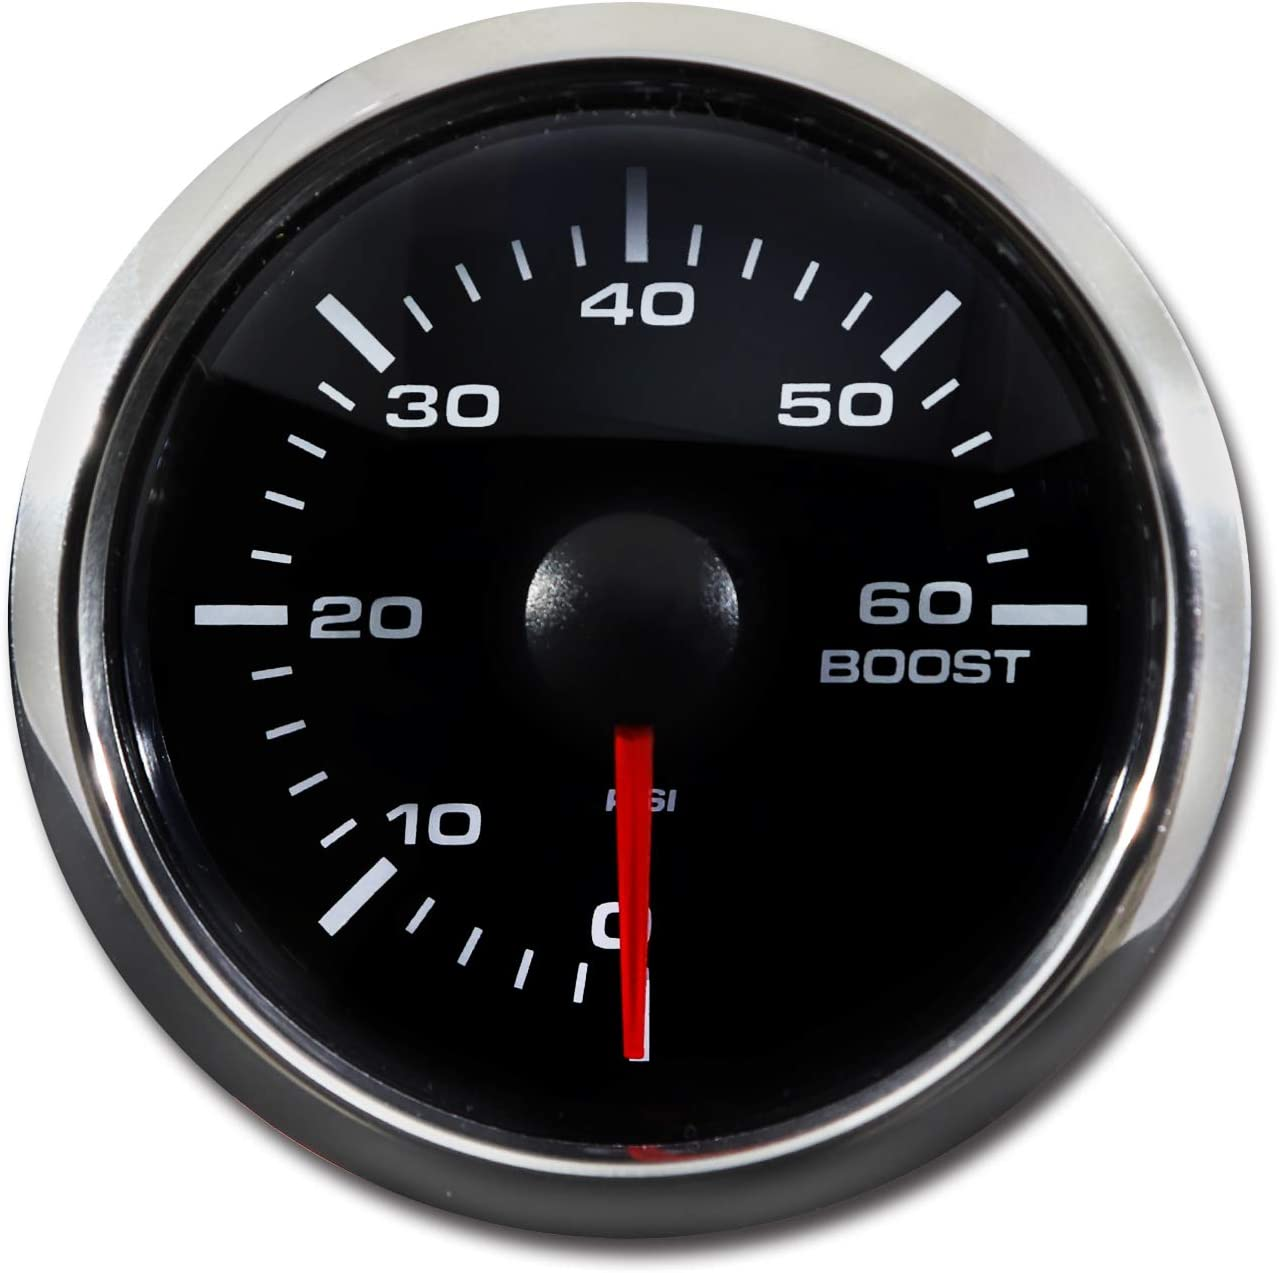 White LED Digital 60 PSI 配送員設置送料無料 Boost Pre Kit Gauge 国内在庫 Includes Electronic